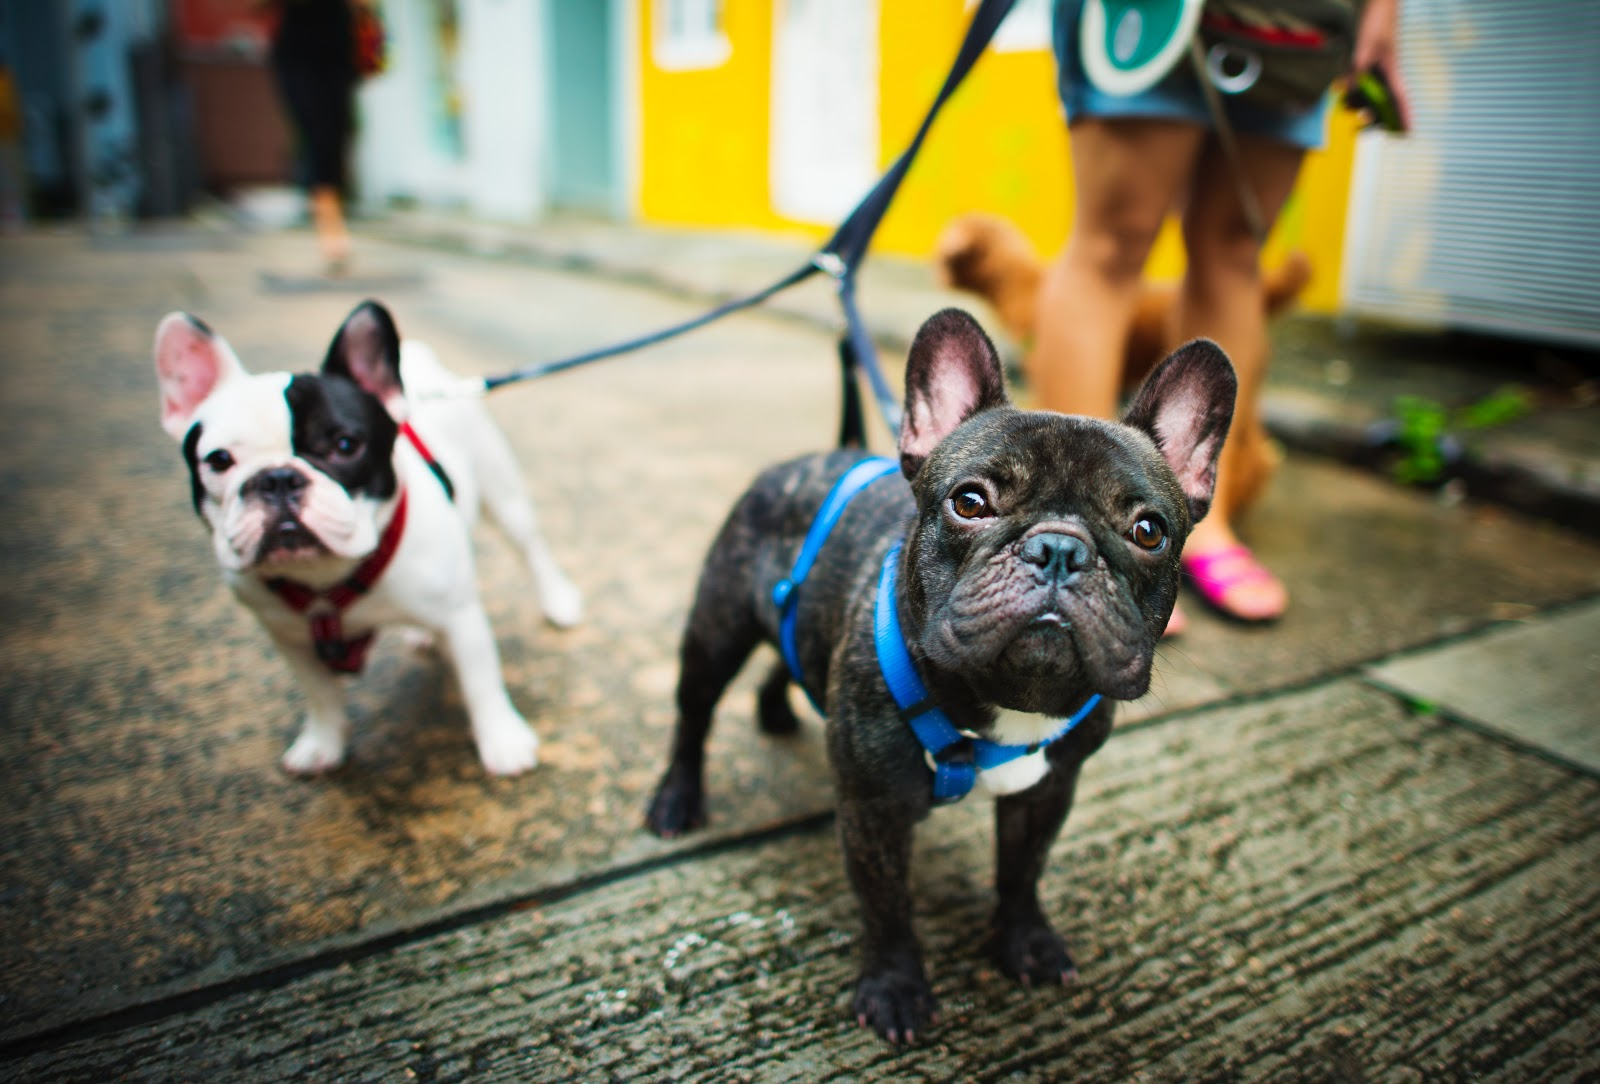 two french bull dogs pull on their leash, perhaps displaying anxious or aggressive canine body language